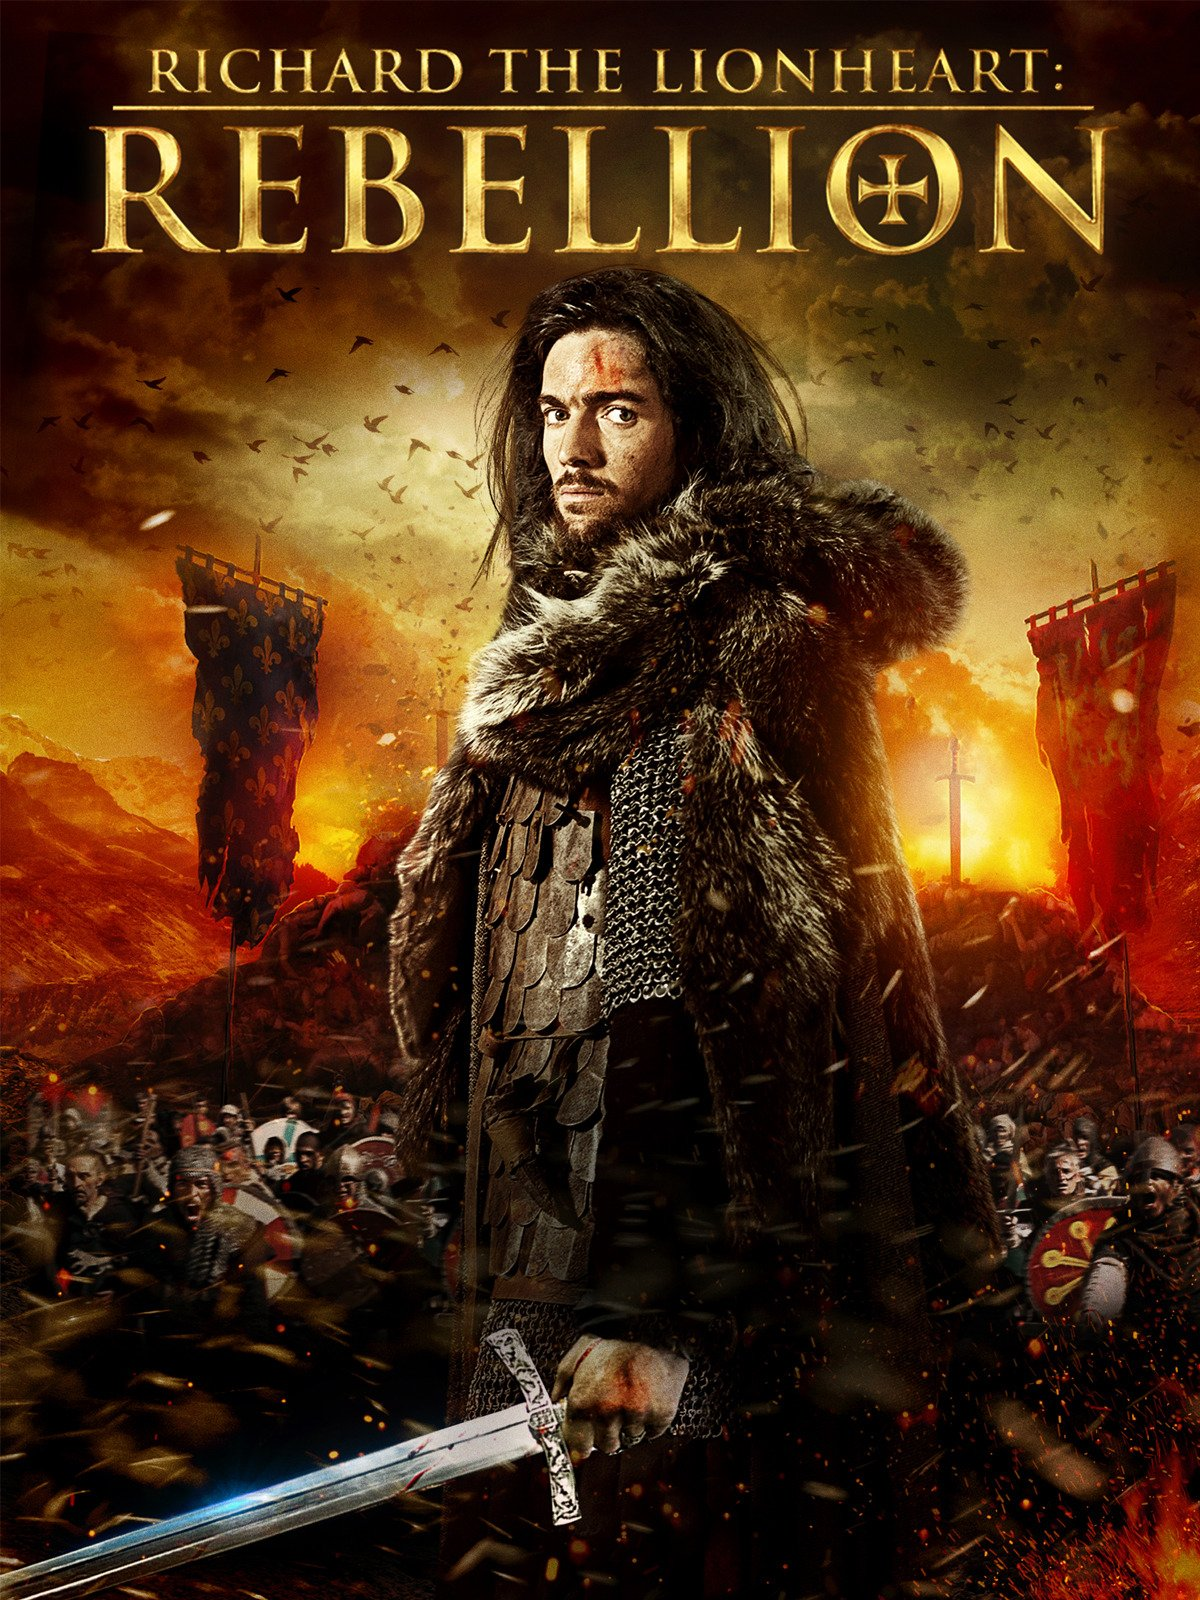 Richard The Lionheart Rebellion 2015 Hindi Dual Audio  480p |720p BluRay  x264 AAC 335MB | 800MB Download